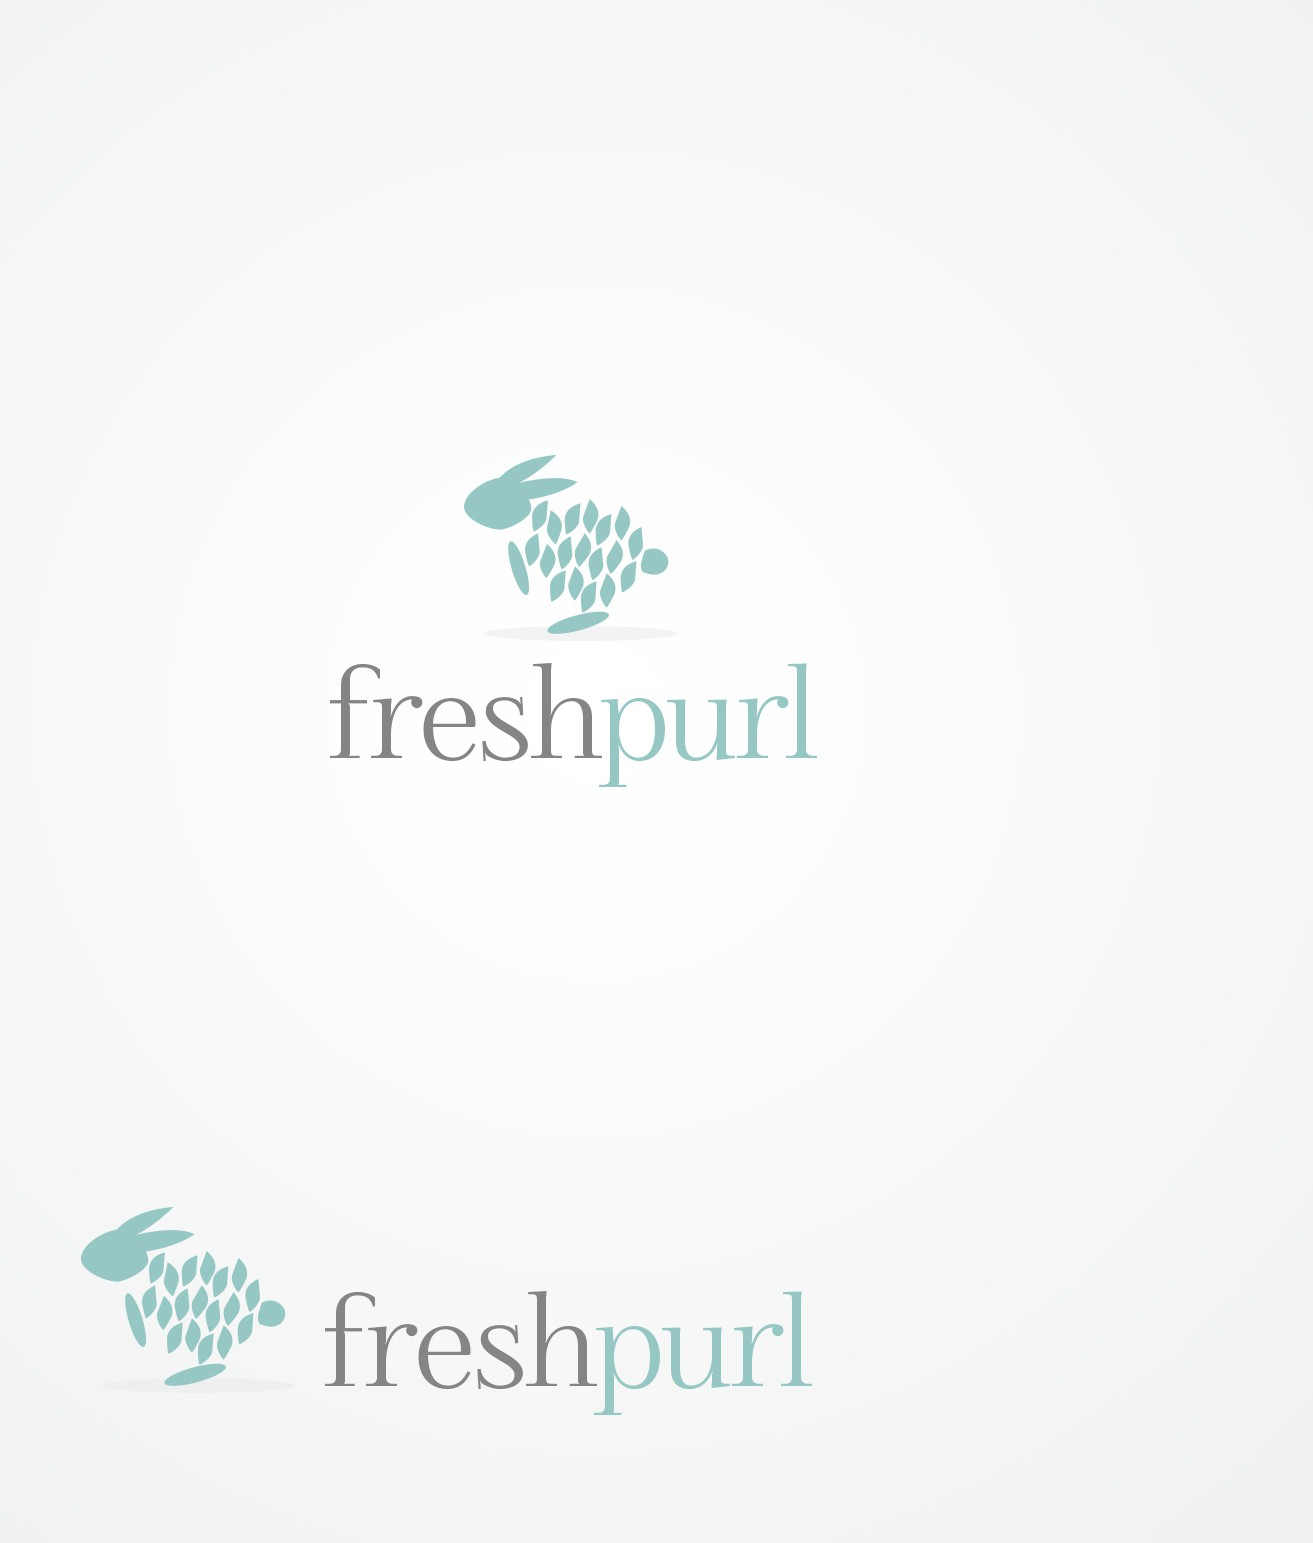 Logo design by MashaM